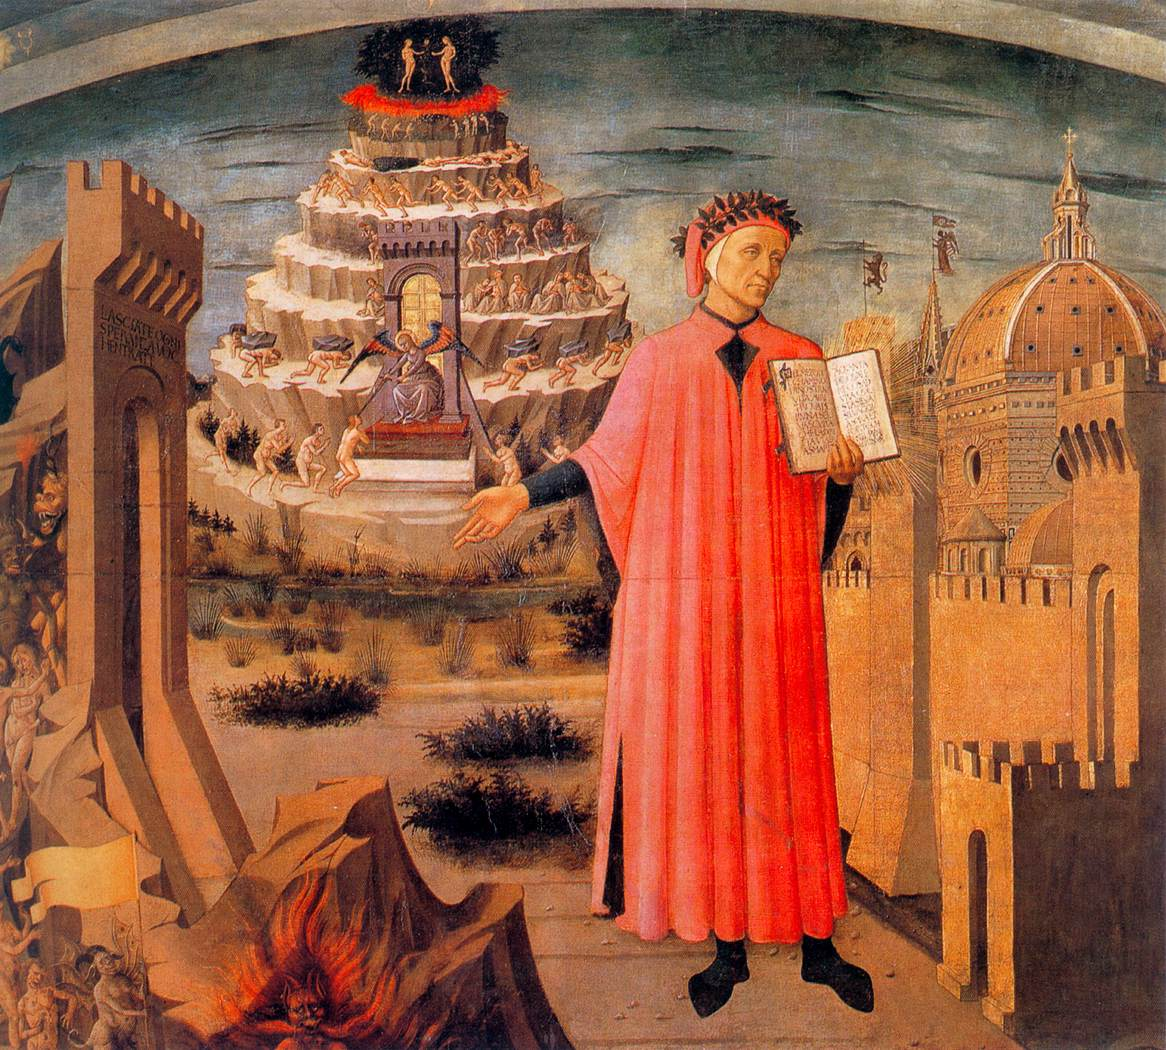 st thomas aquinas dante Dante is, john ruskin wrote 100 years ago, «the central man of all the world»   like aristotle, st thomas aquinas, and dante himself, had a concentric mind,.